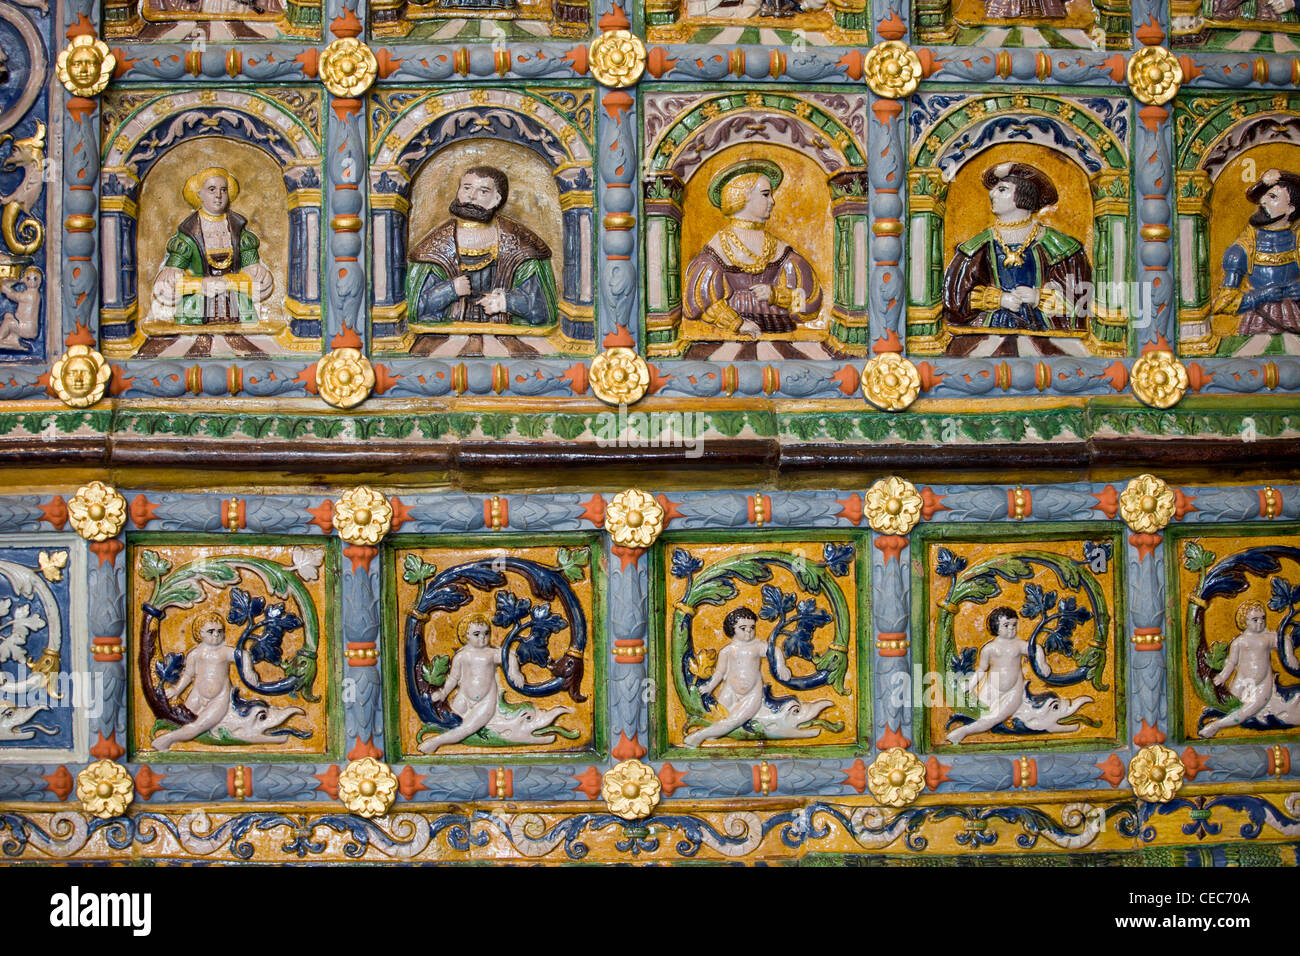 Ornate tiles on the tiled stove in the Artus Court in Gdansk, Poland - Stock Image